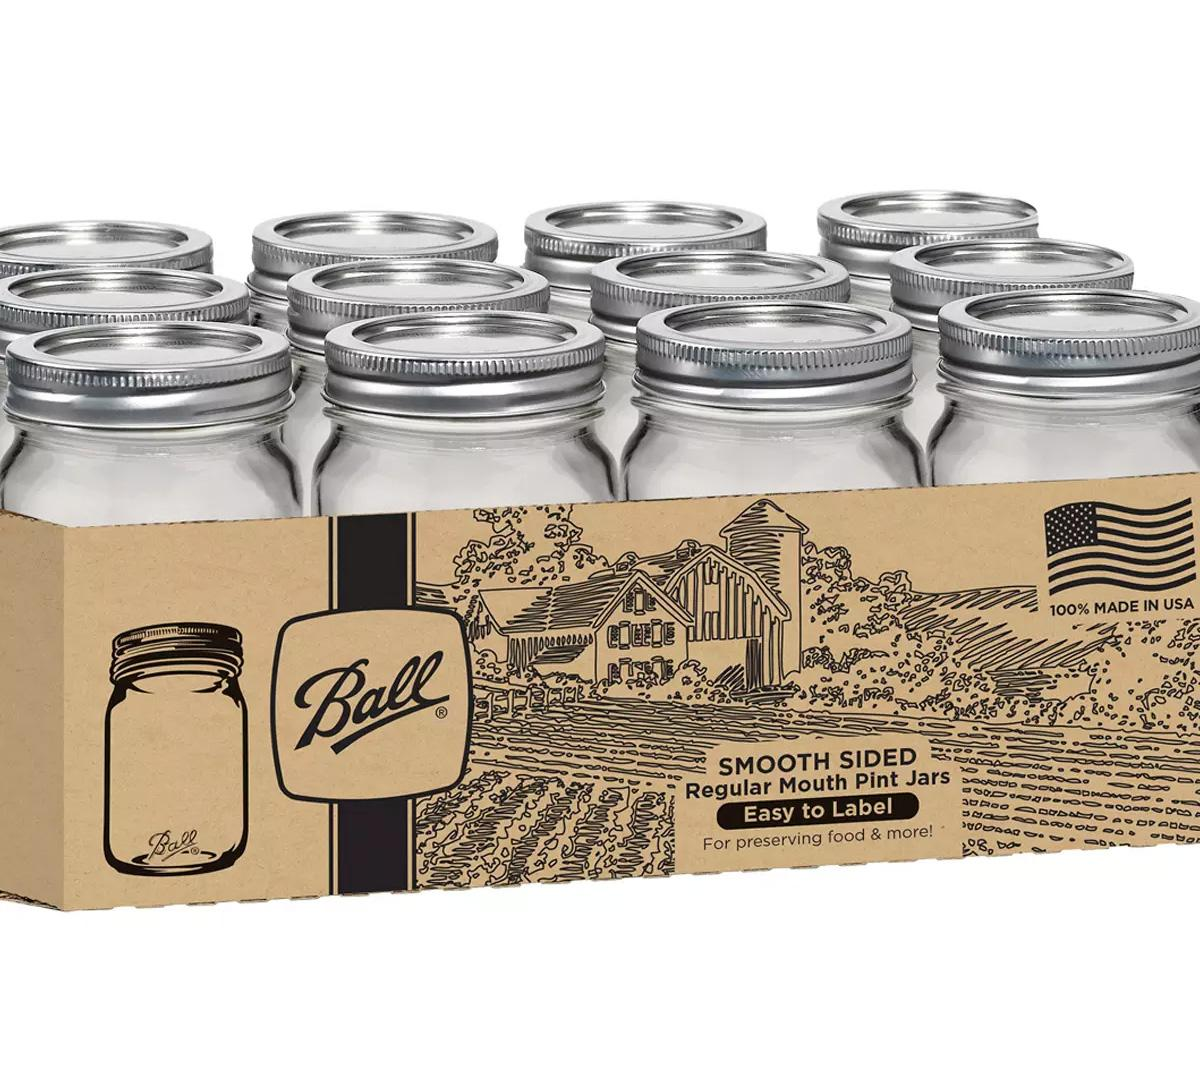 12 Ball Pint Smooth Sided Regular Mouth Canning Jars for $6.39